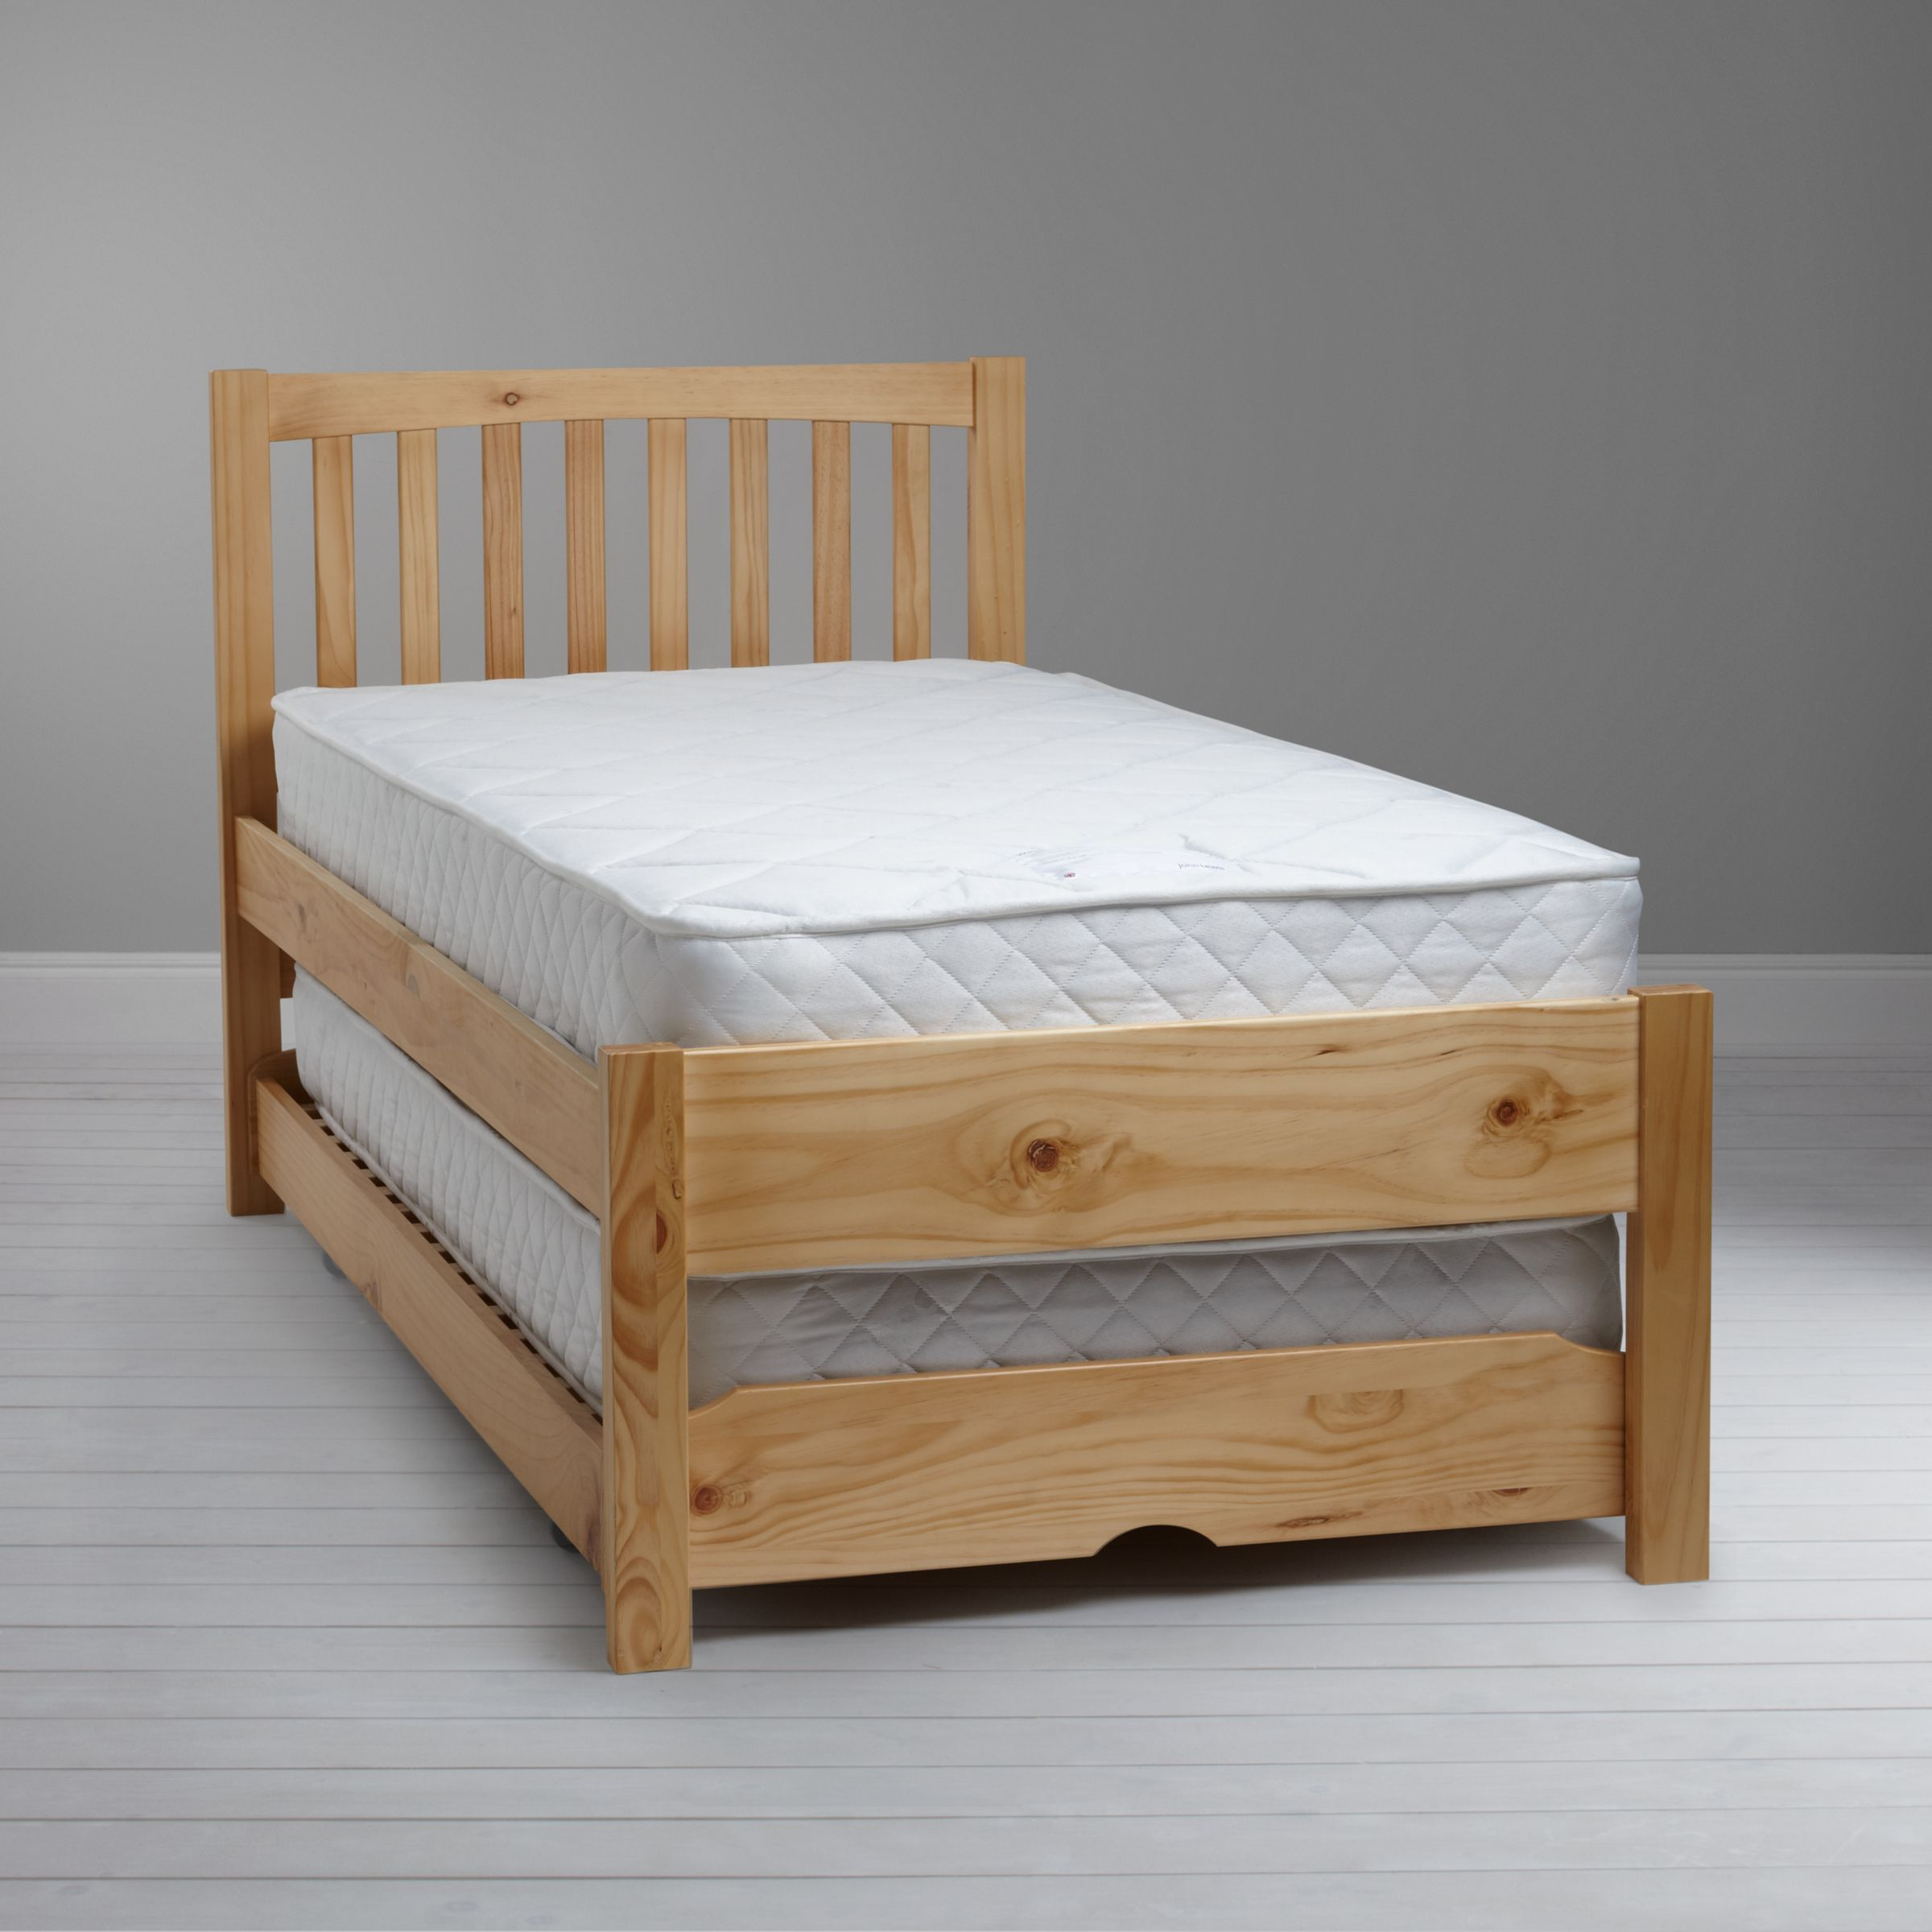 John Lewis Value Woodstock Guest Bed, Pine